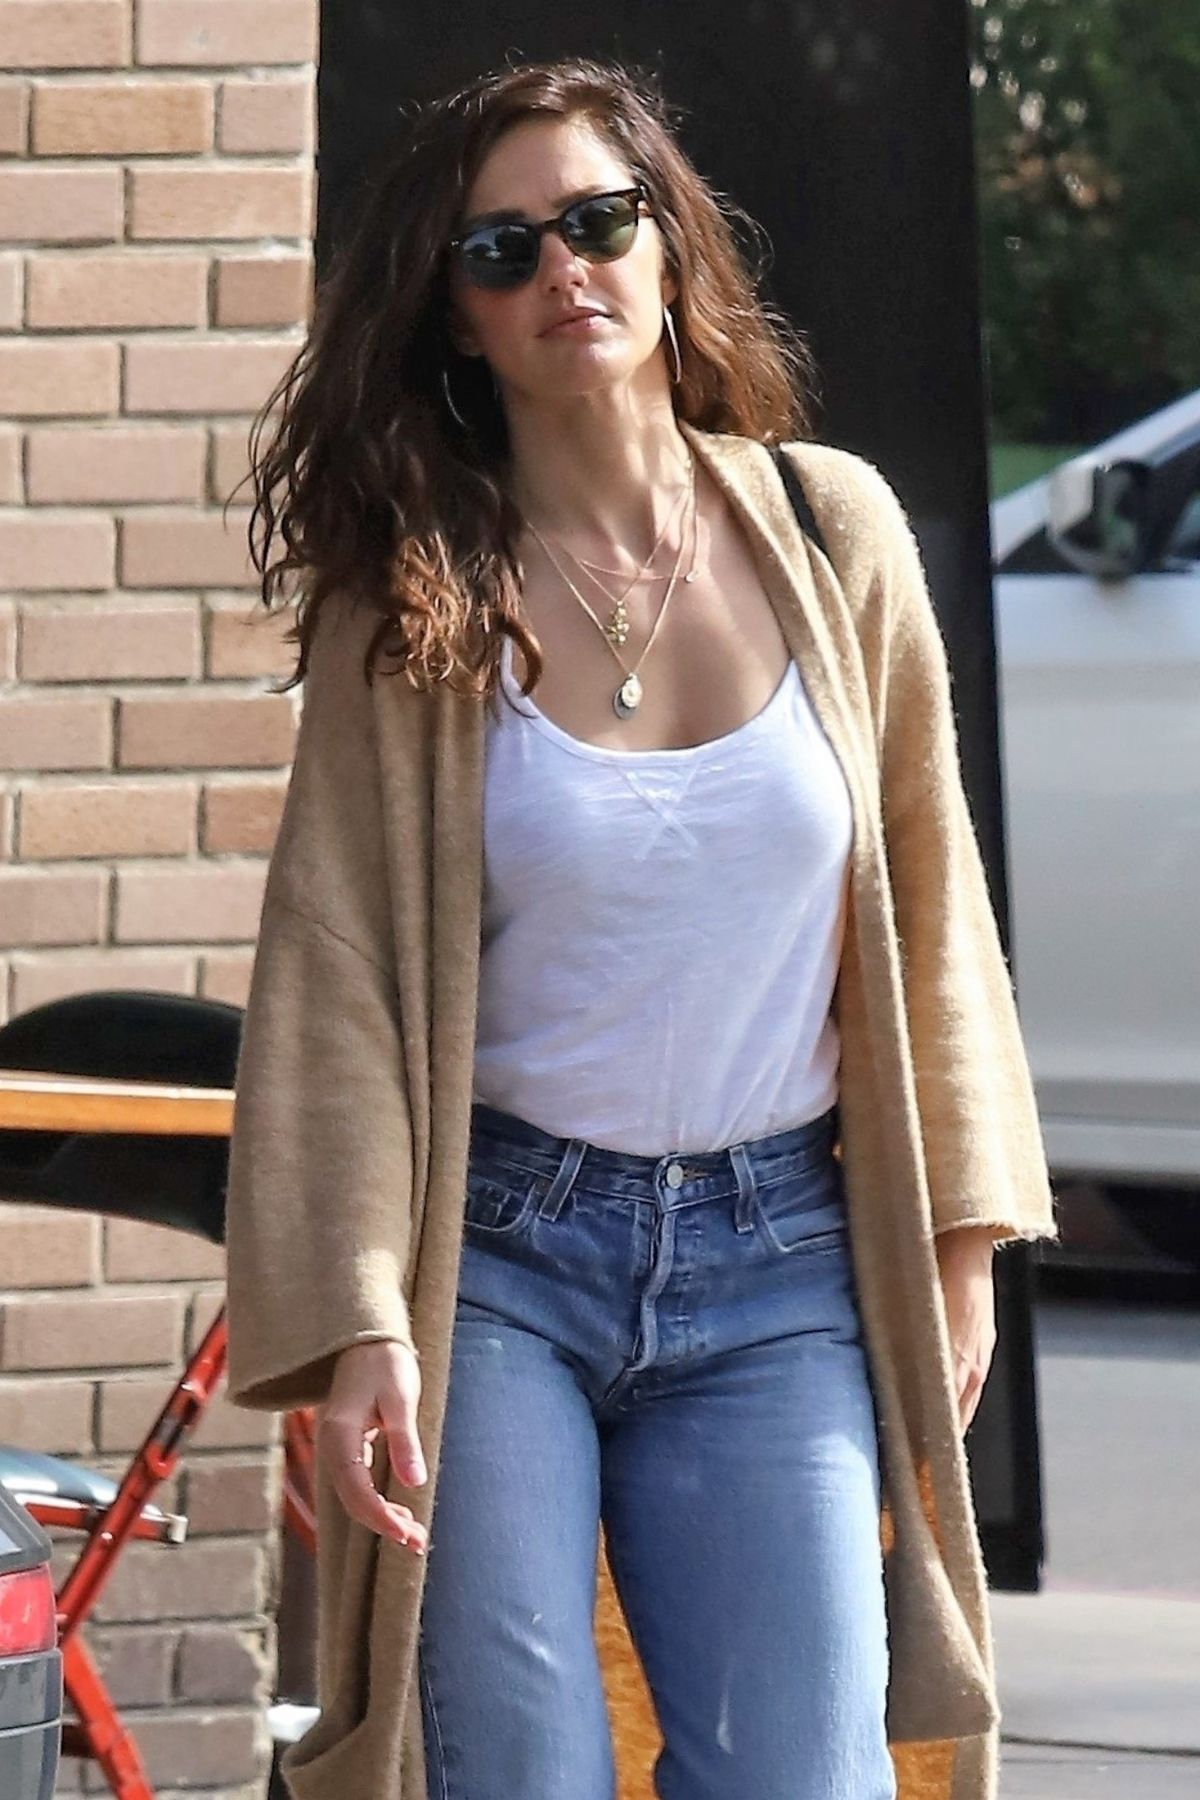 MINKA KELLY Out and About in Los Feliz 01/22/2019 – HawtCelebs